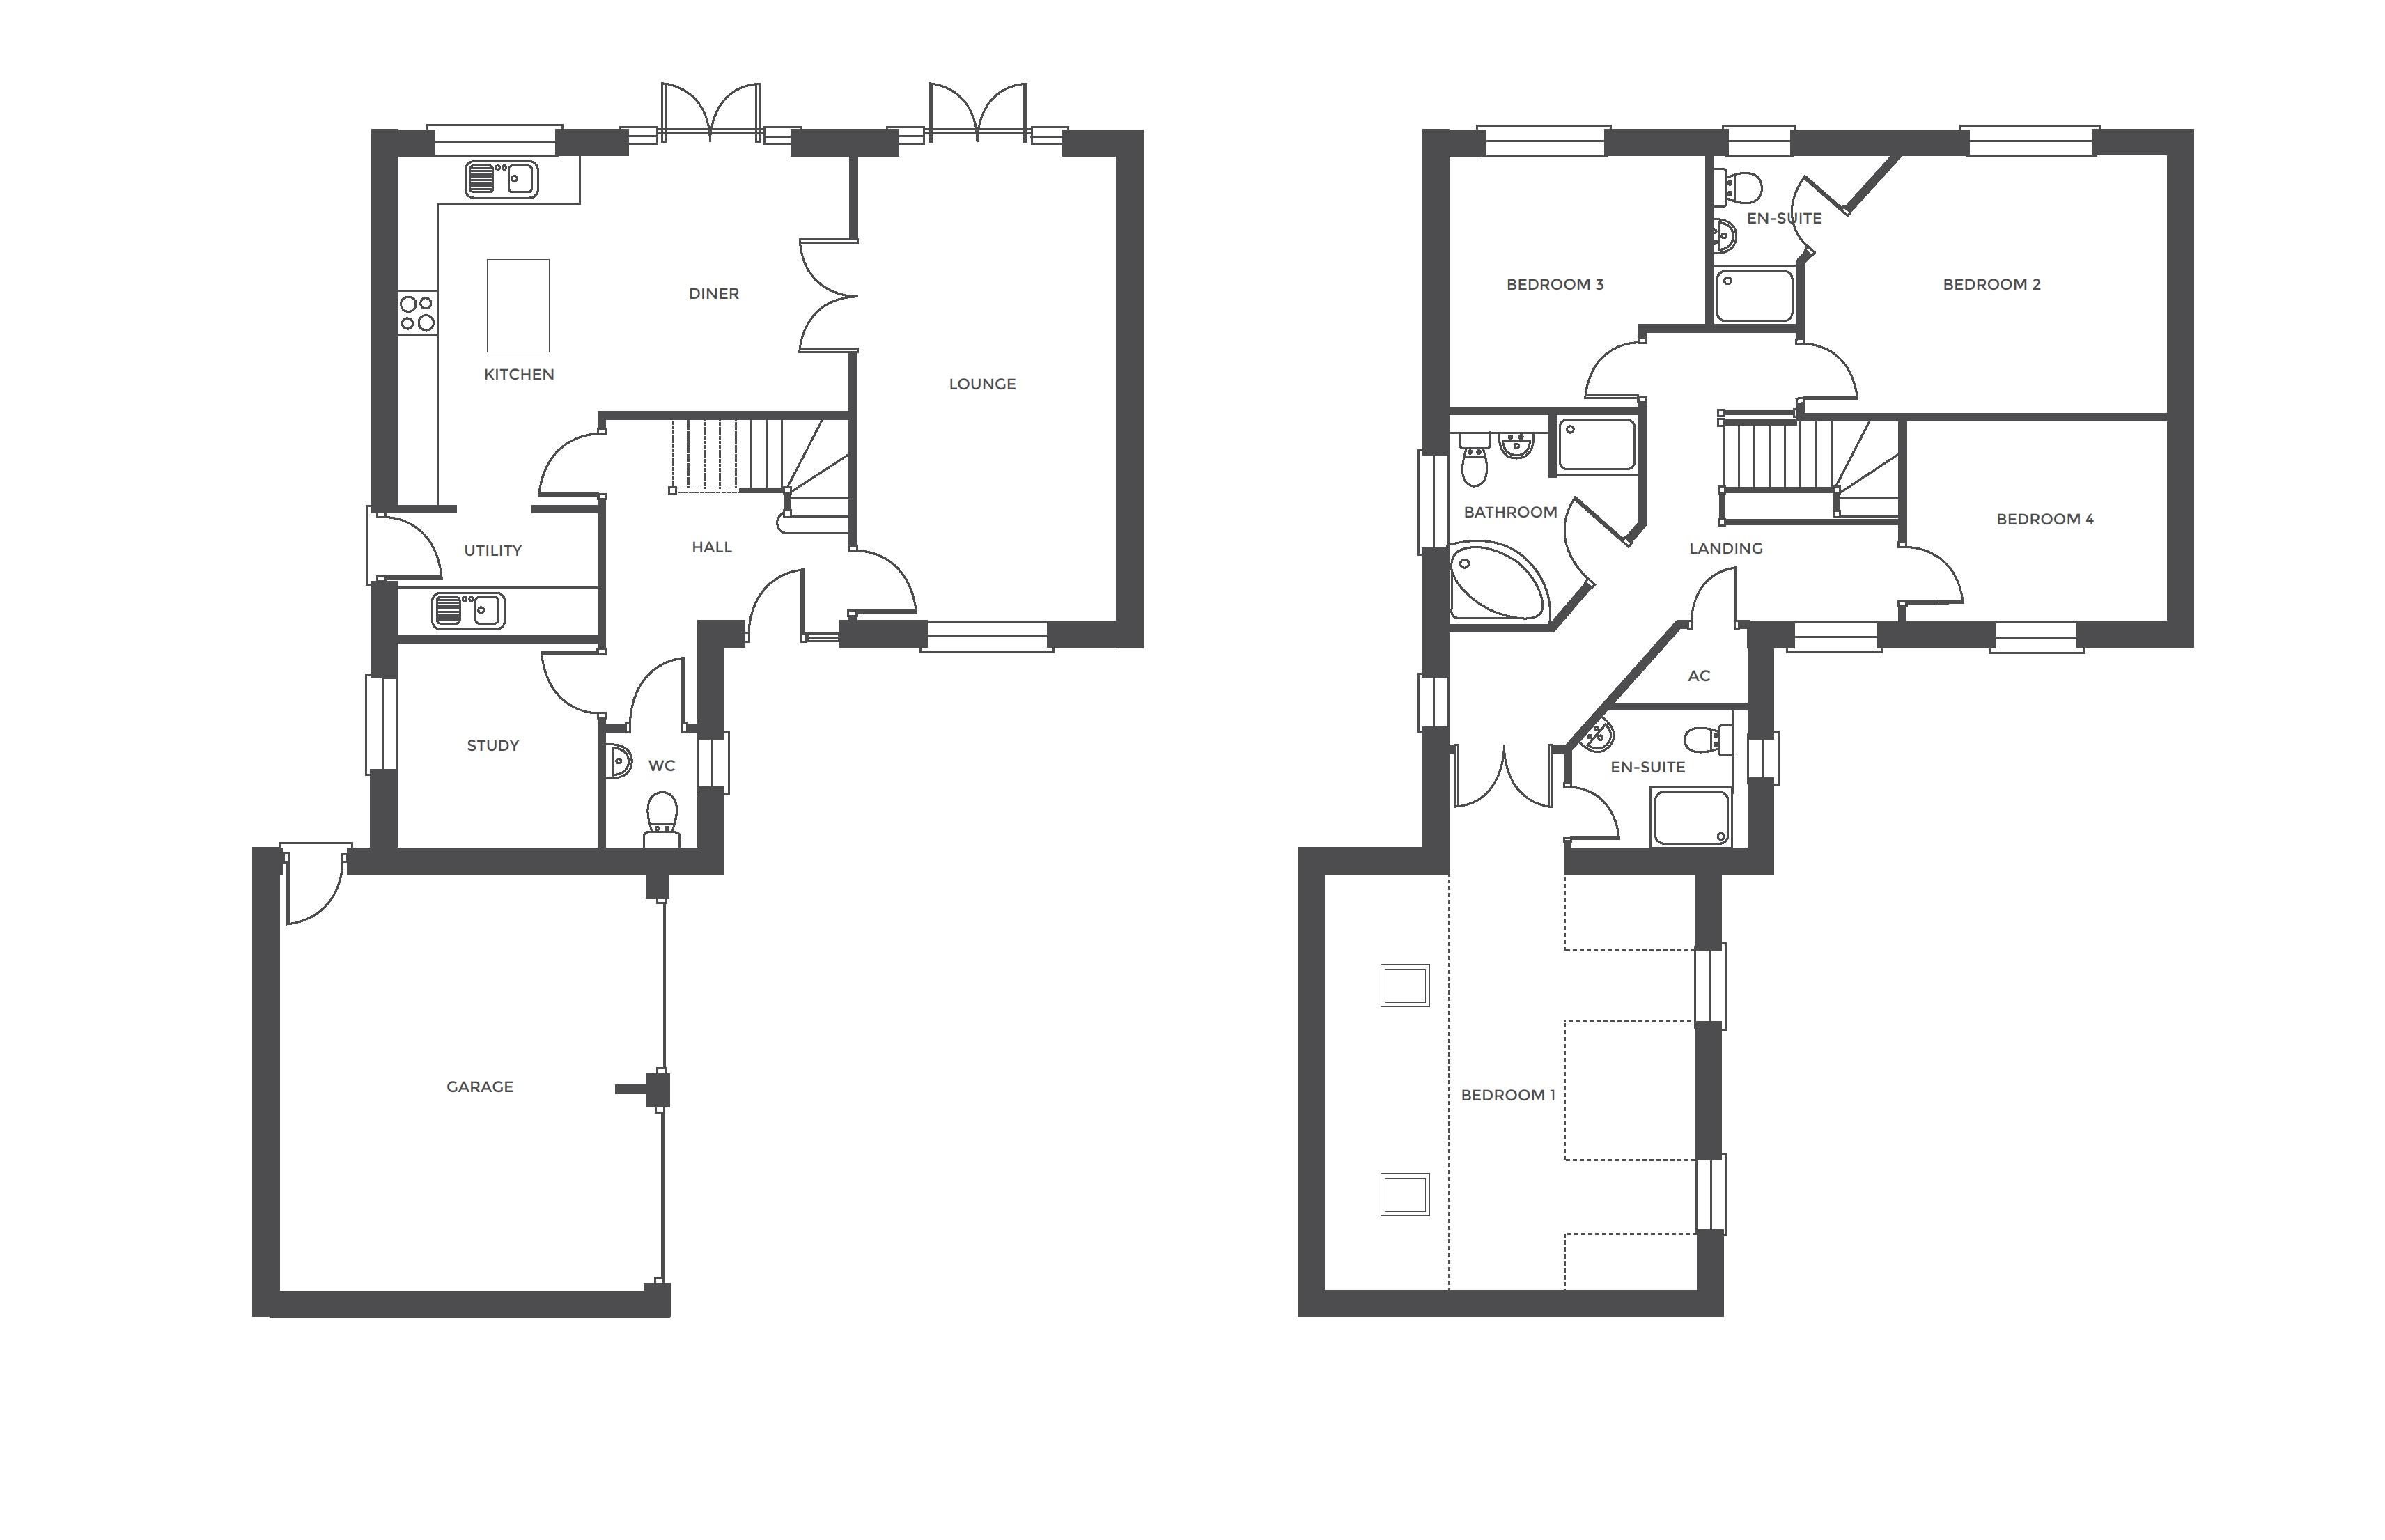 The Grange at Ivy Manor, Plot 17 floor plan